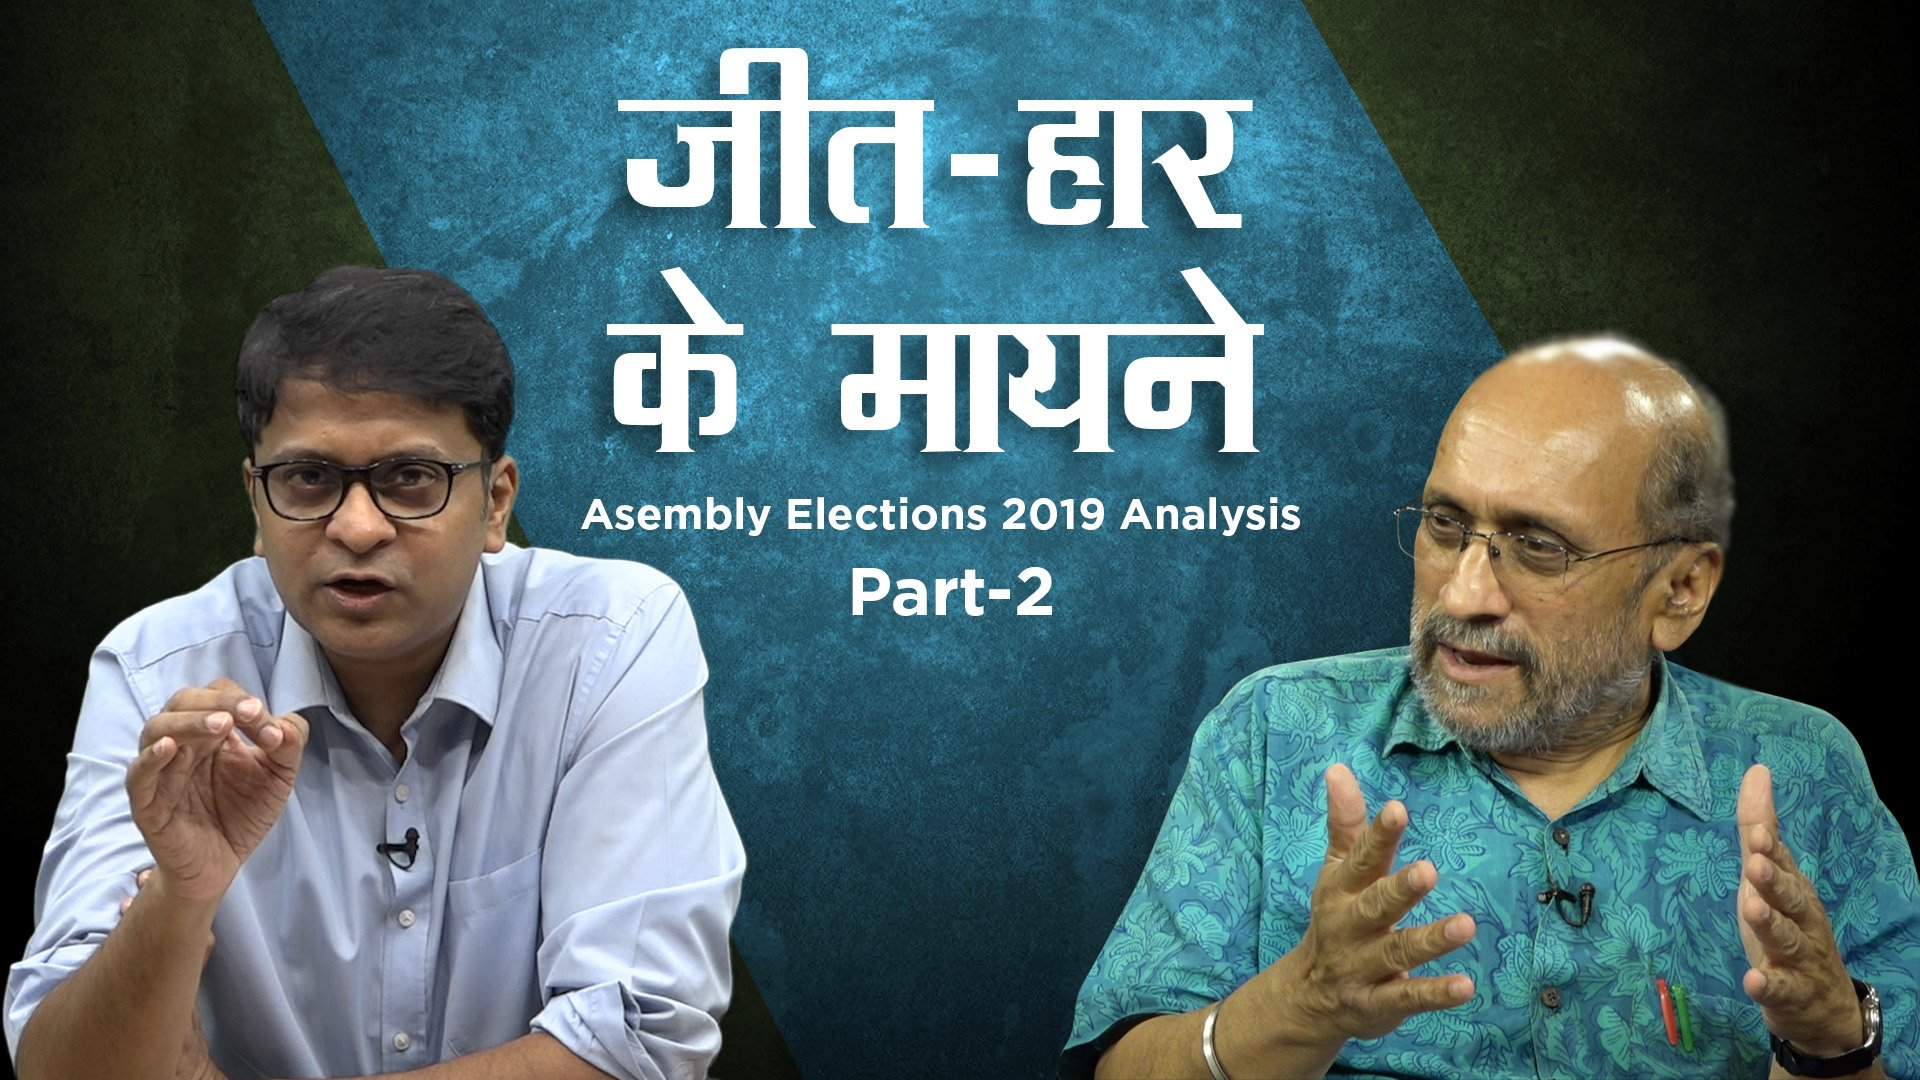 Assembly Elections 2019 and Economic Distress